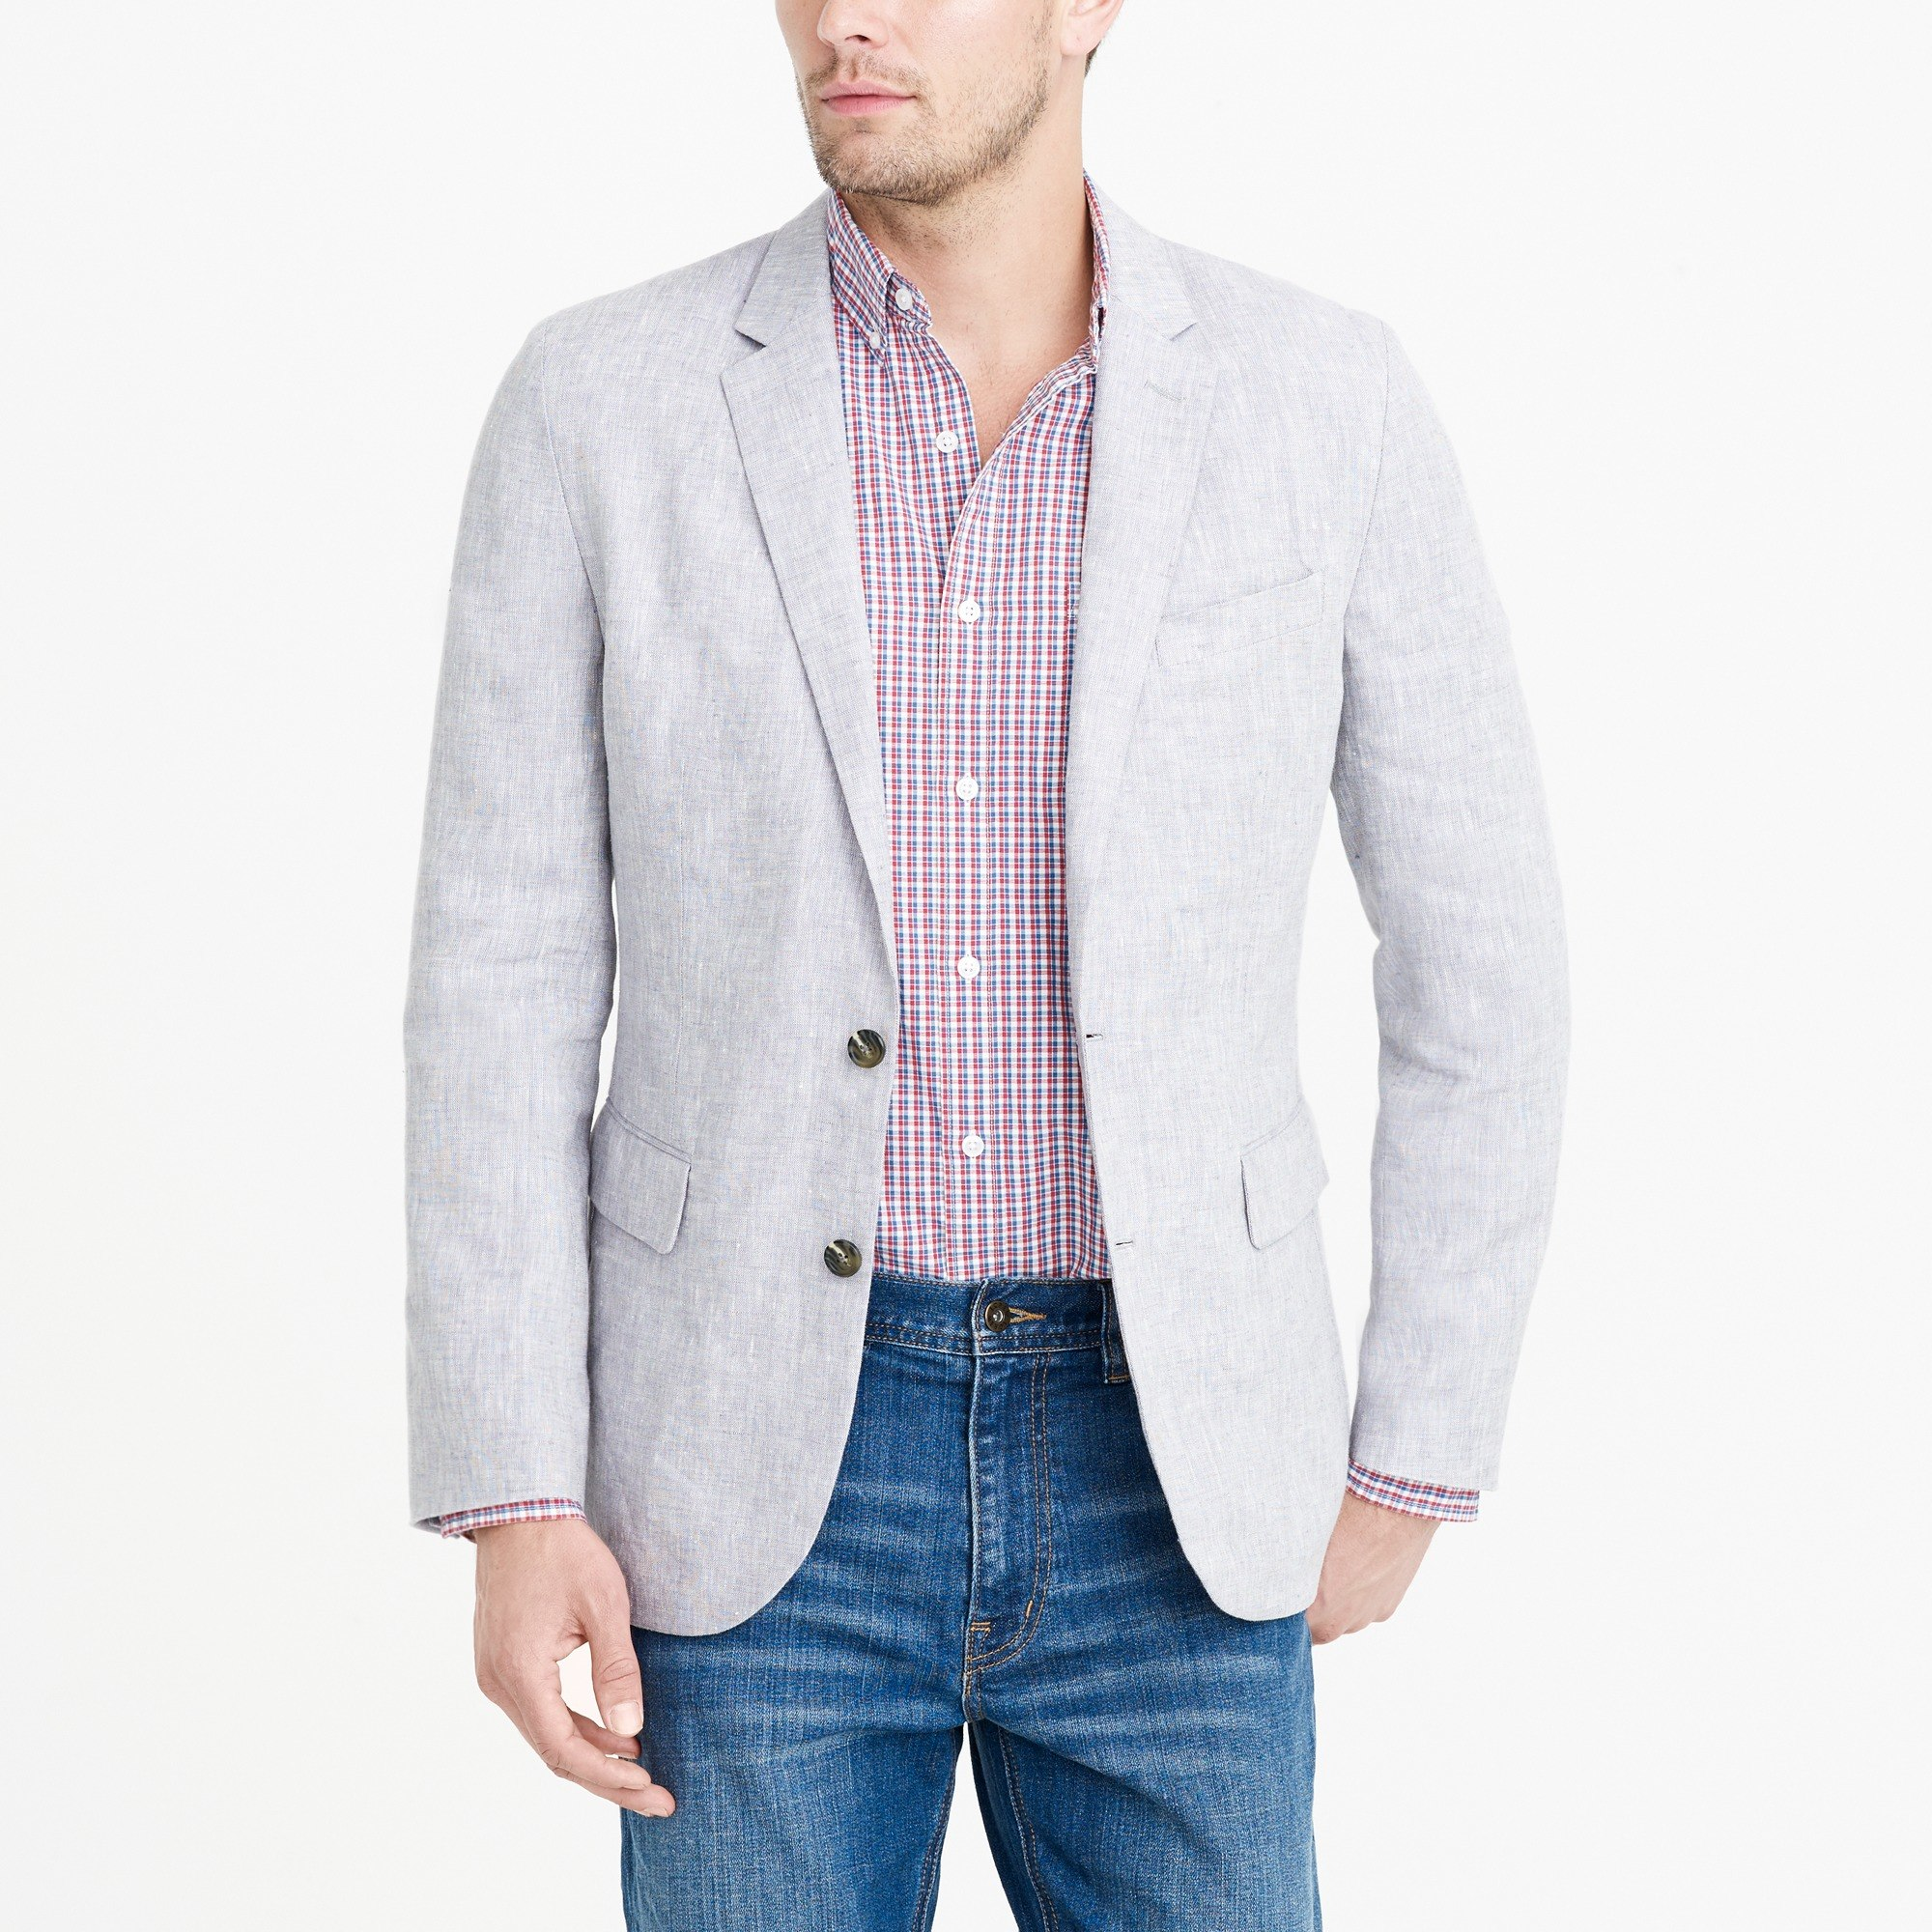 Thompson unstructured linen blazer : FactoryMen Dress-up Shop | Factory